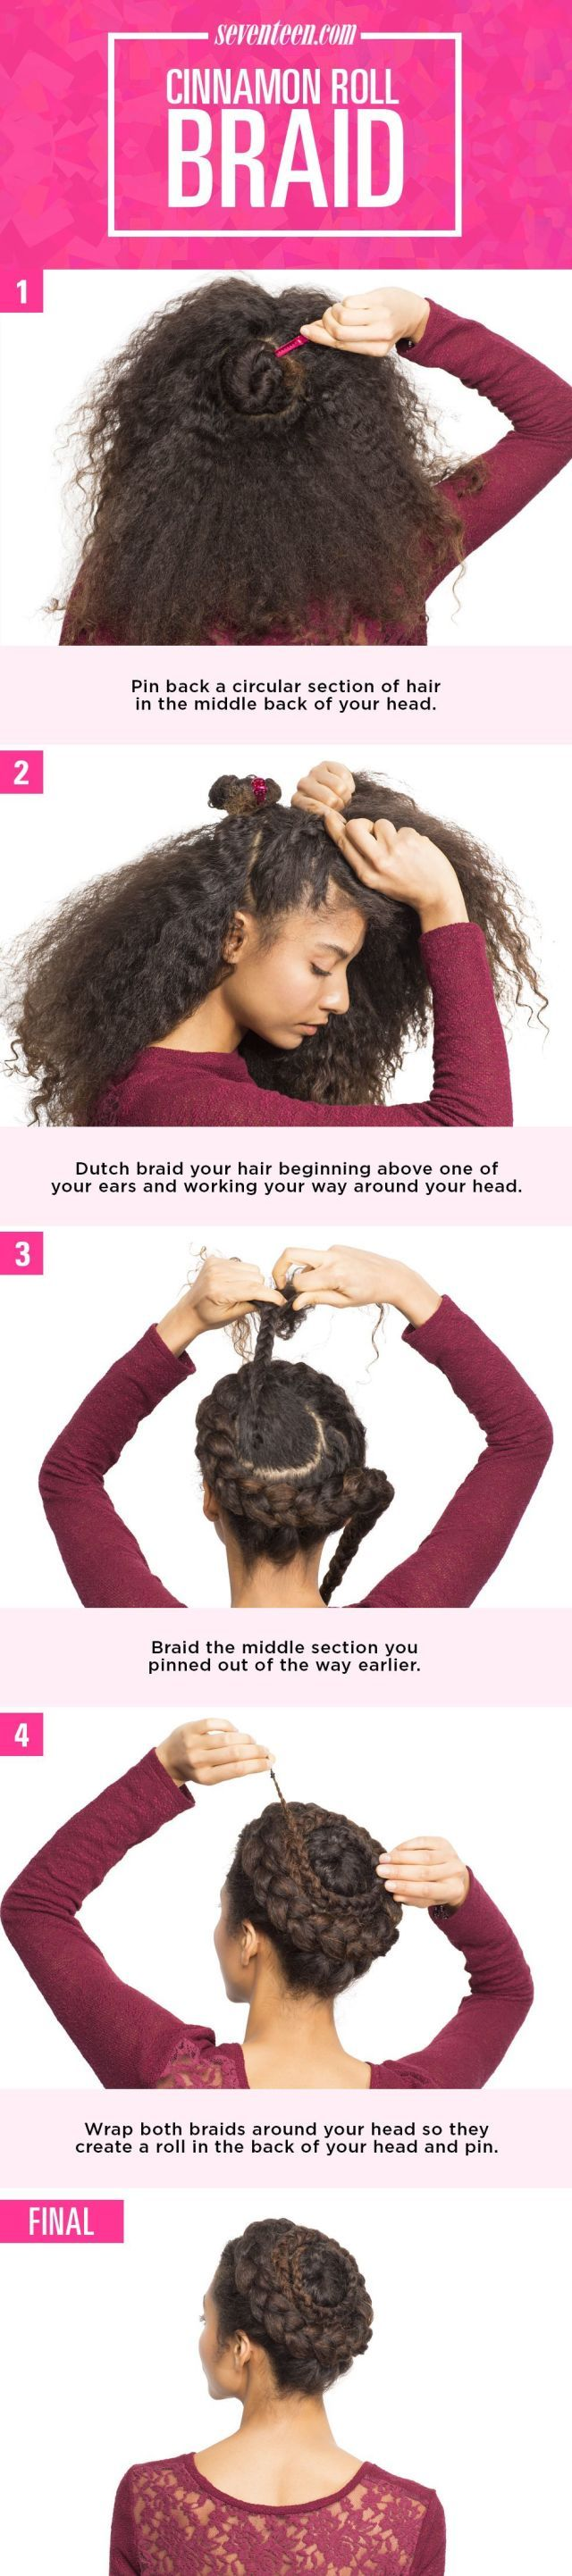 The+Prettiest+New+Braided+Hairstyles+for+2016 - Seventeen.com